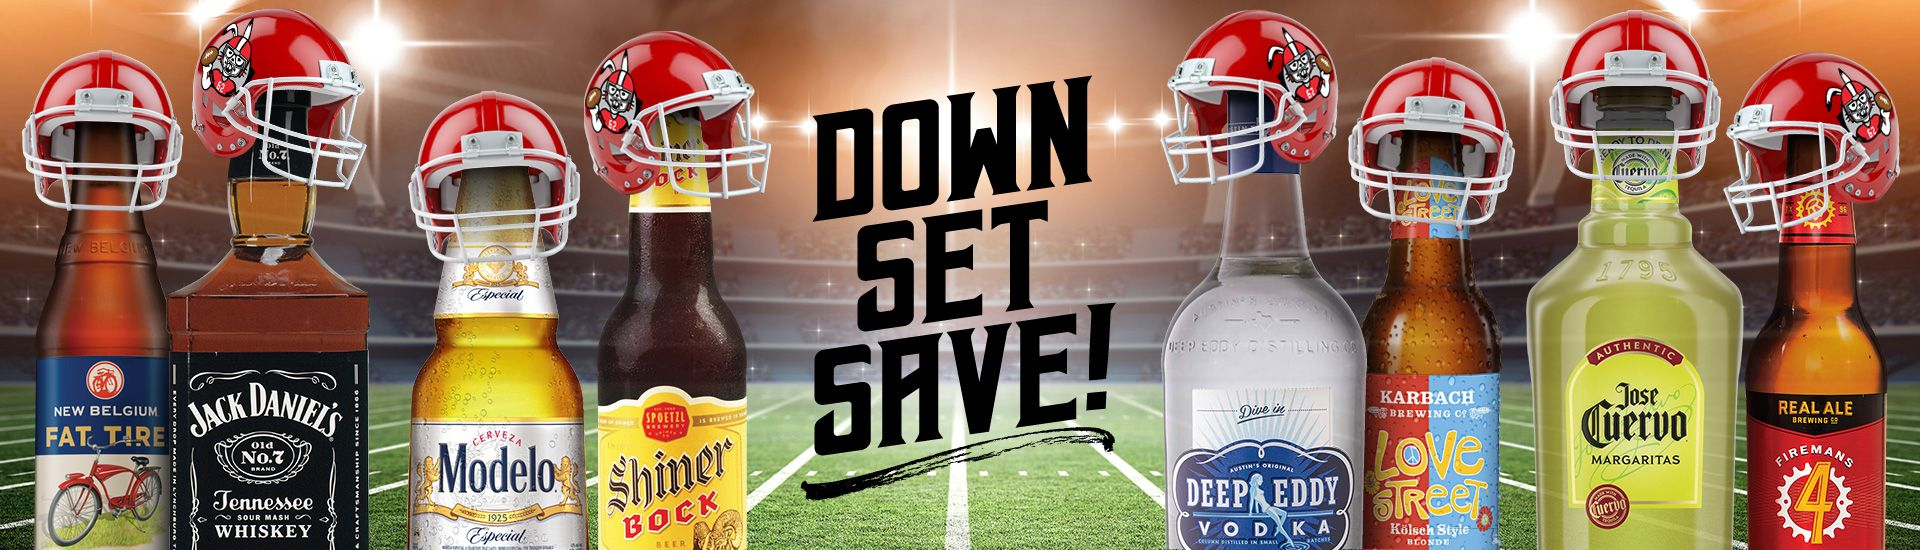 Down set save at specs wine store liquor store wines